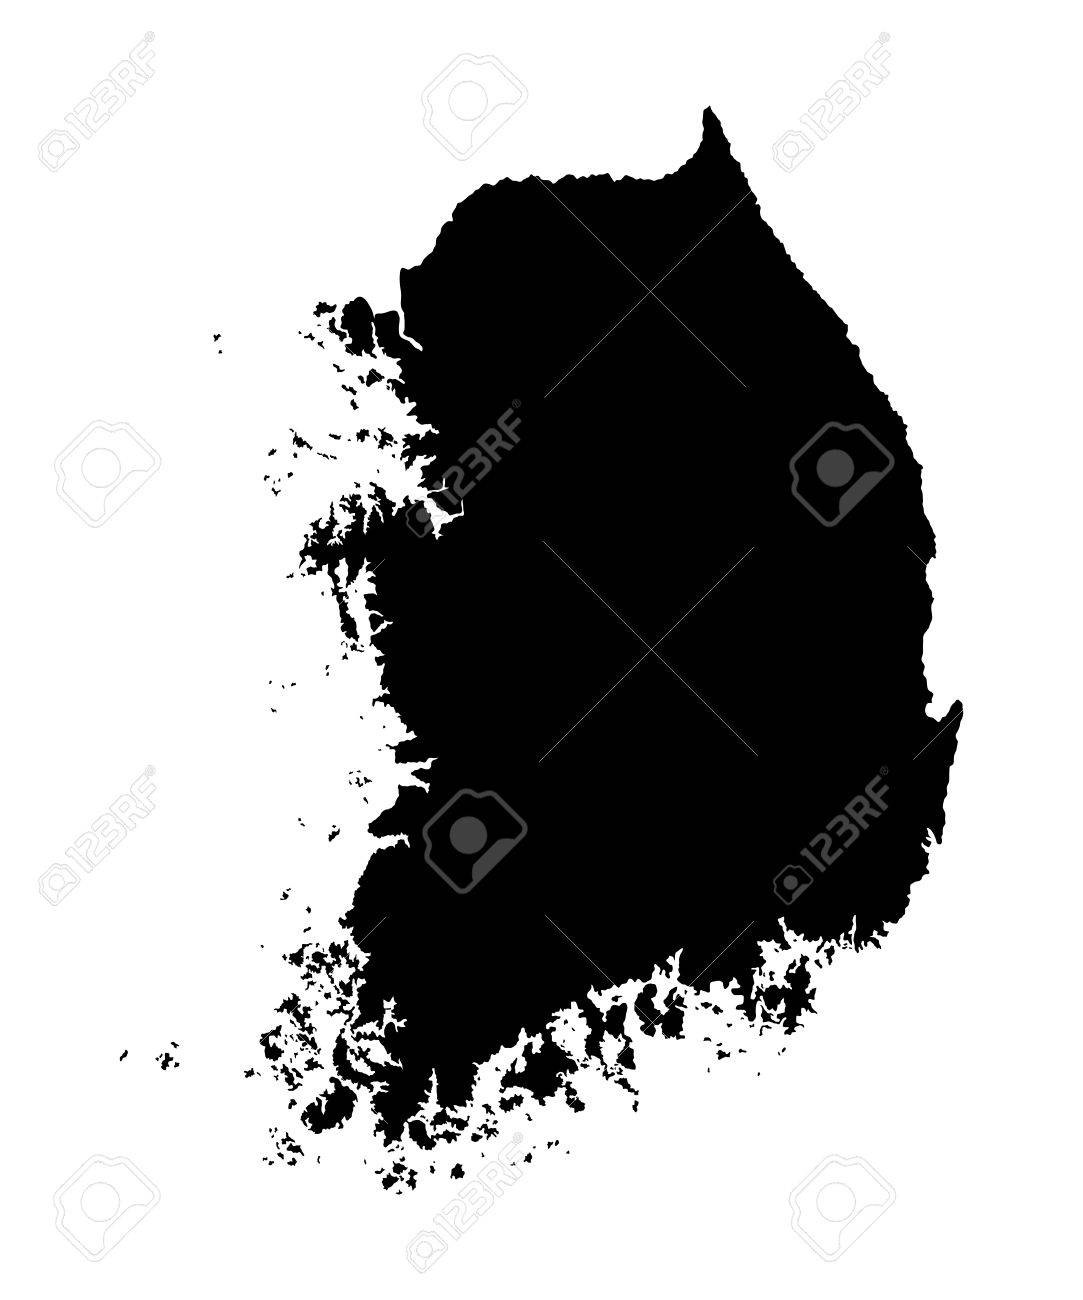 South Korea vector map high detailed silhouette illustration isolated on white background. - 61574887